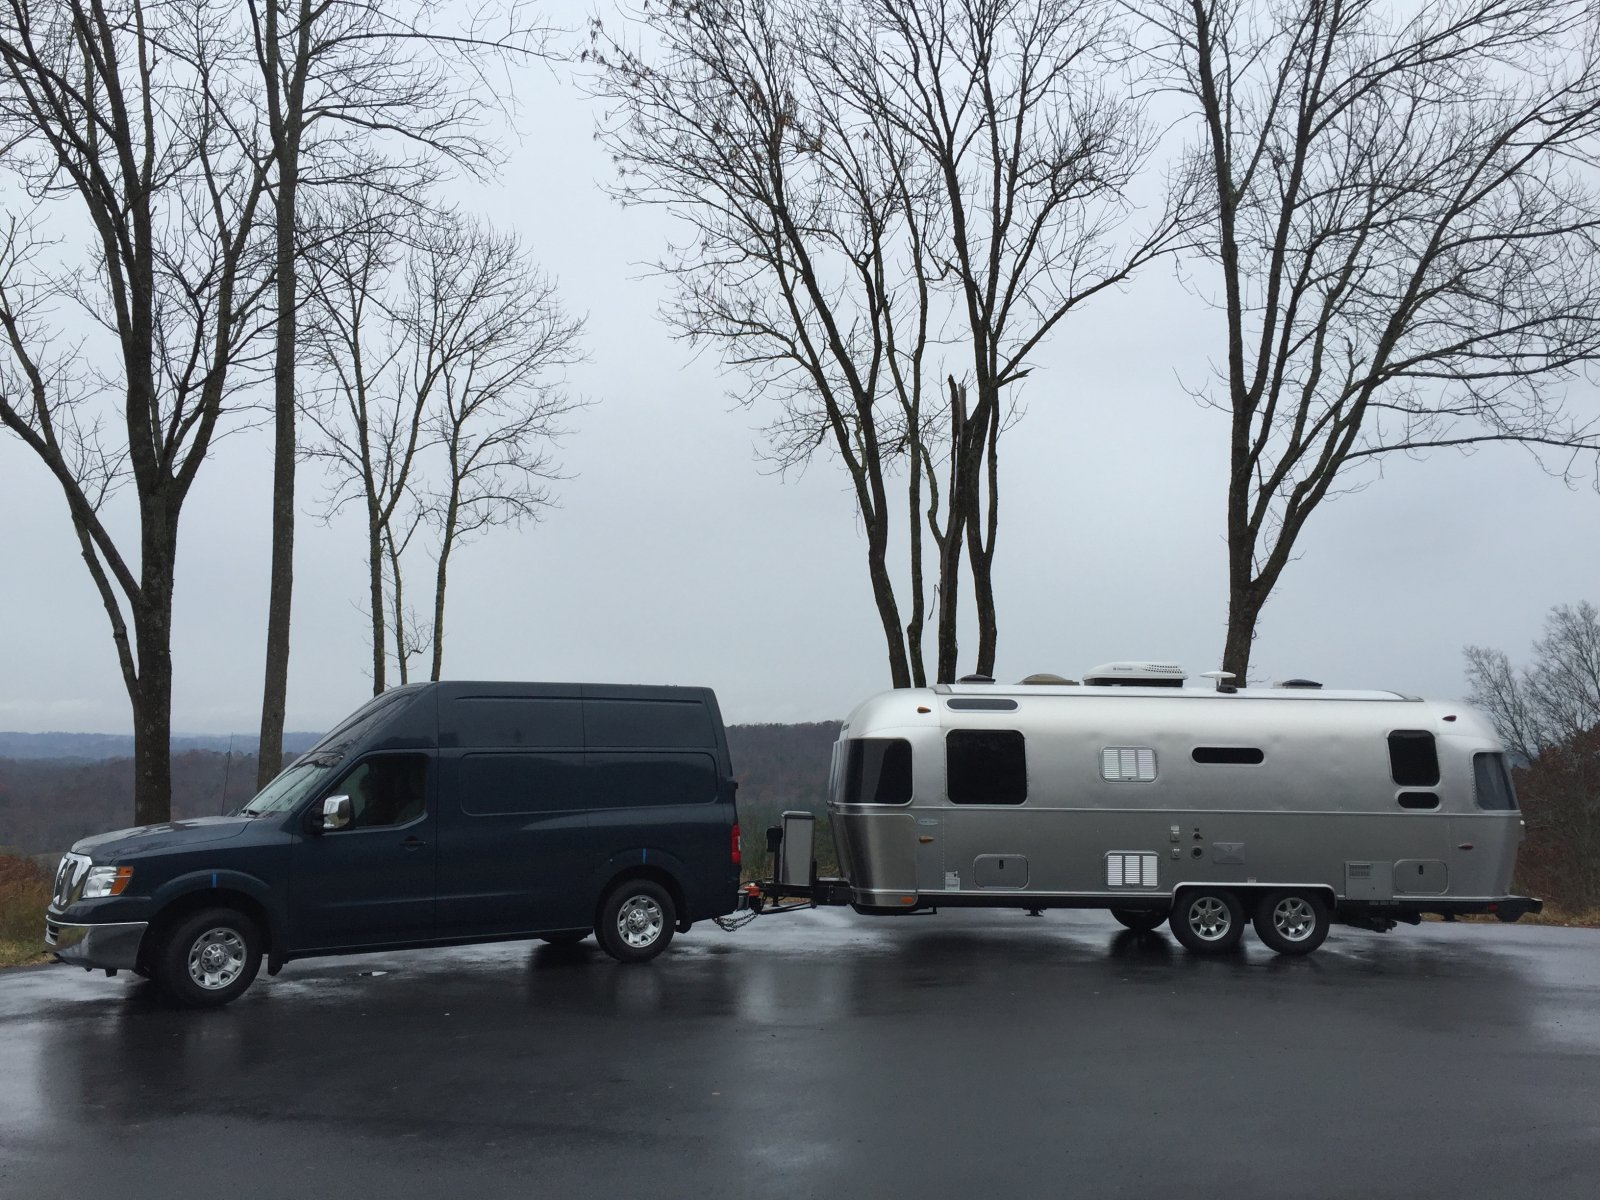 Nv 3500 Nissan Van As Tow Vehicle Page 2 Airstream Forums